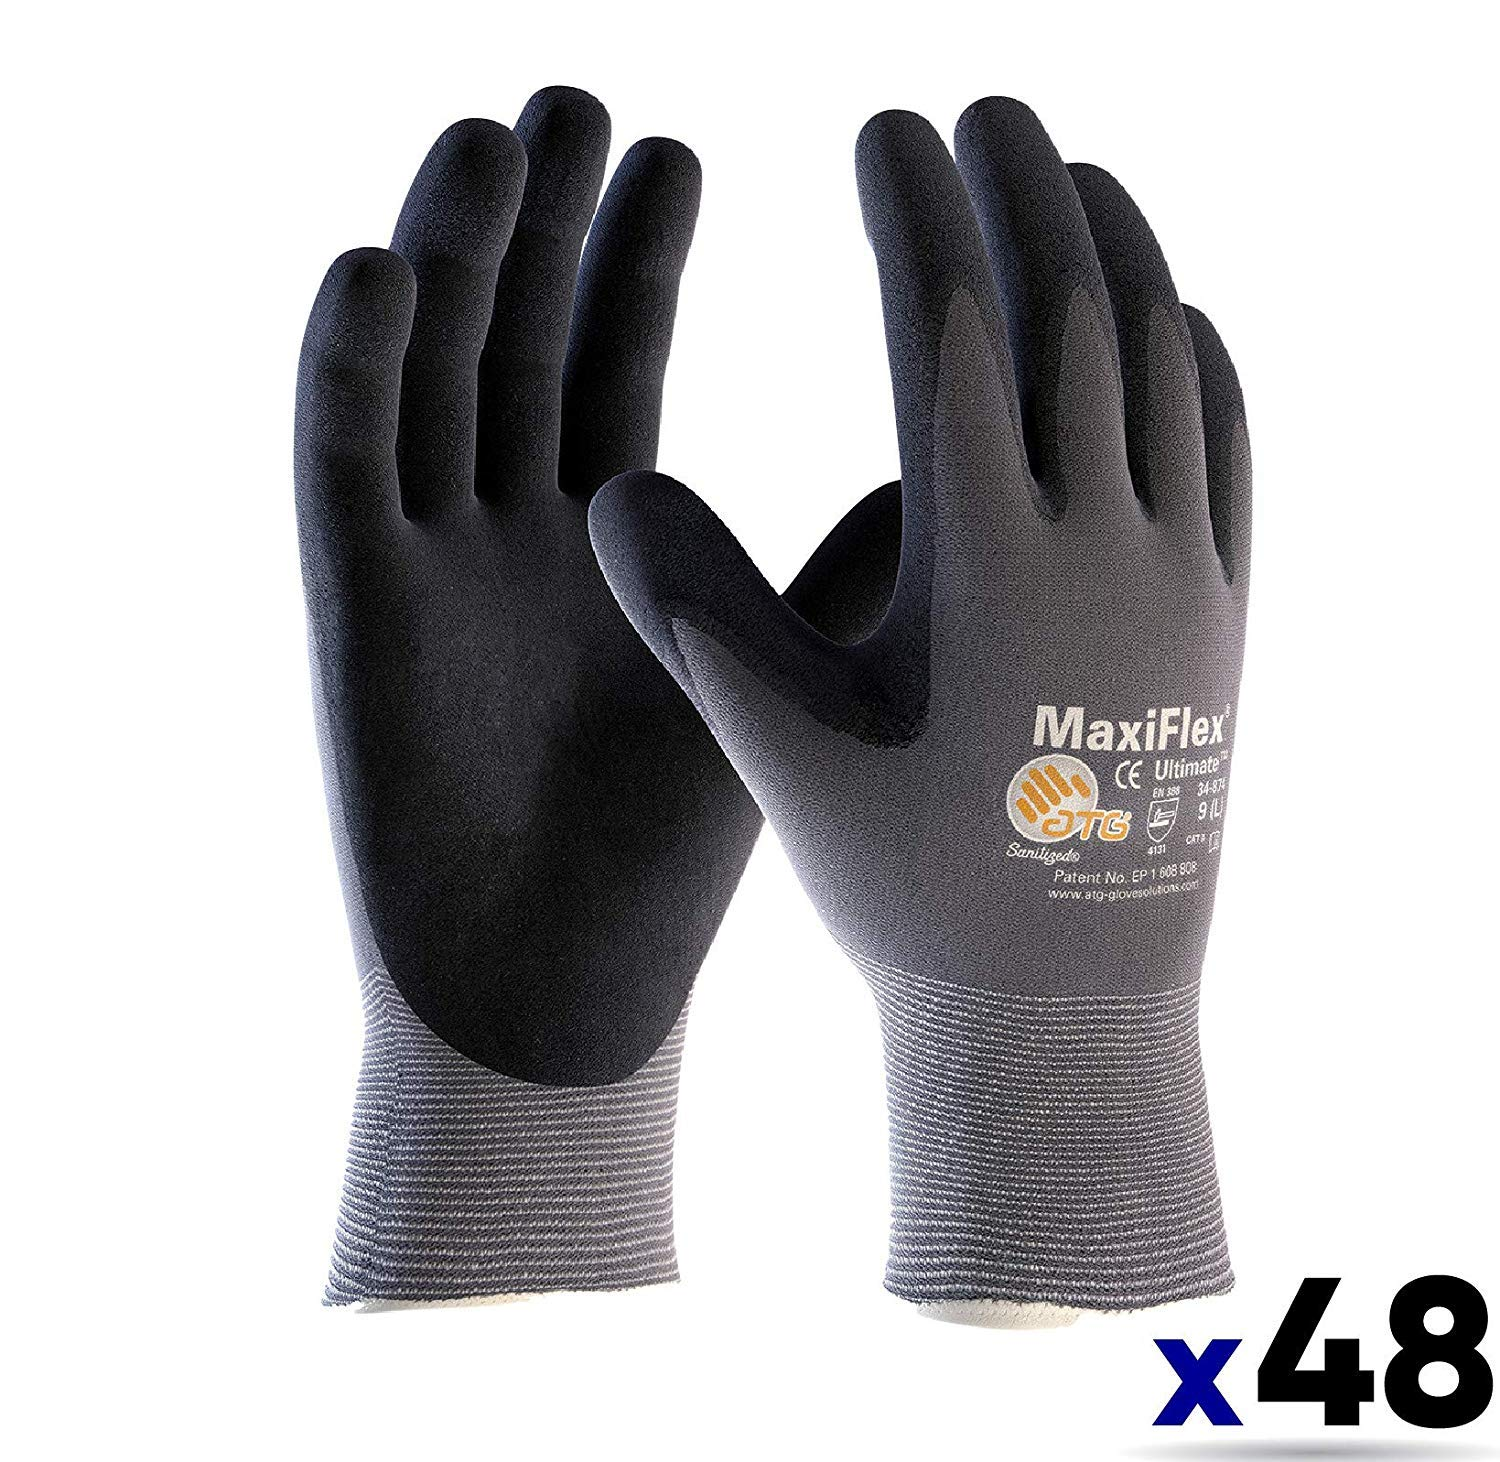 MaxiFlex Ultimate ATG 34-874 EXTRA LARGE / 34-874 Seamless Knit Nylon/Lycra Glove with Nitrile Coated icro-Foam Grip on Palm and Fingers (48 PACK)